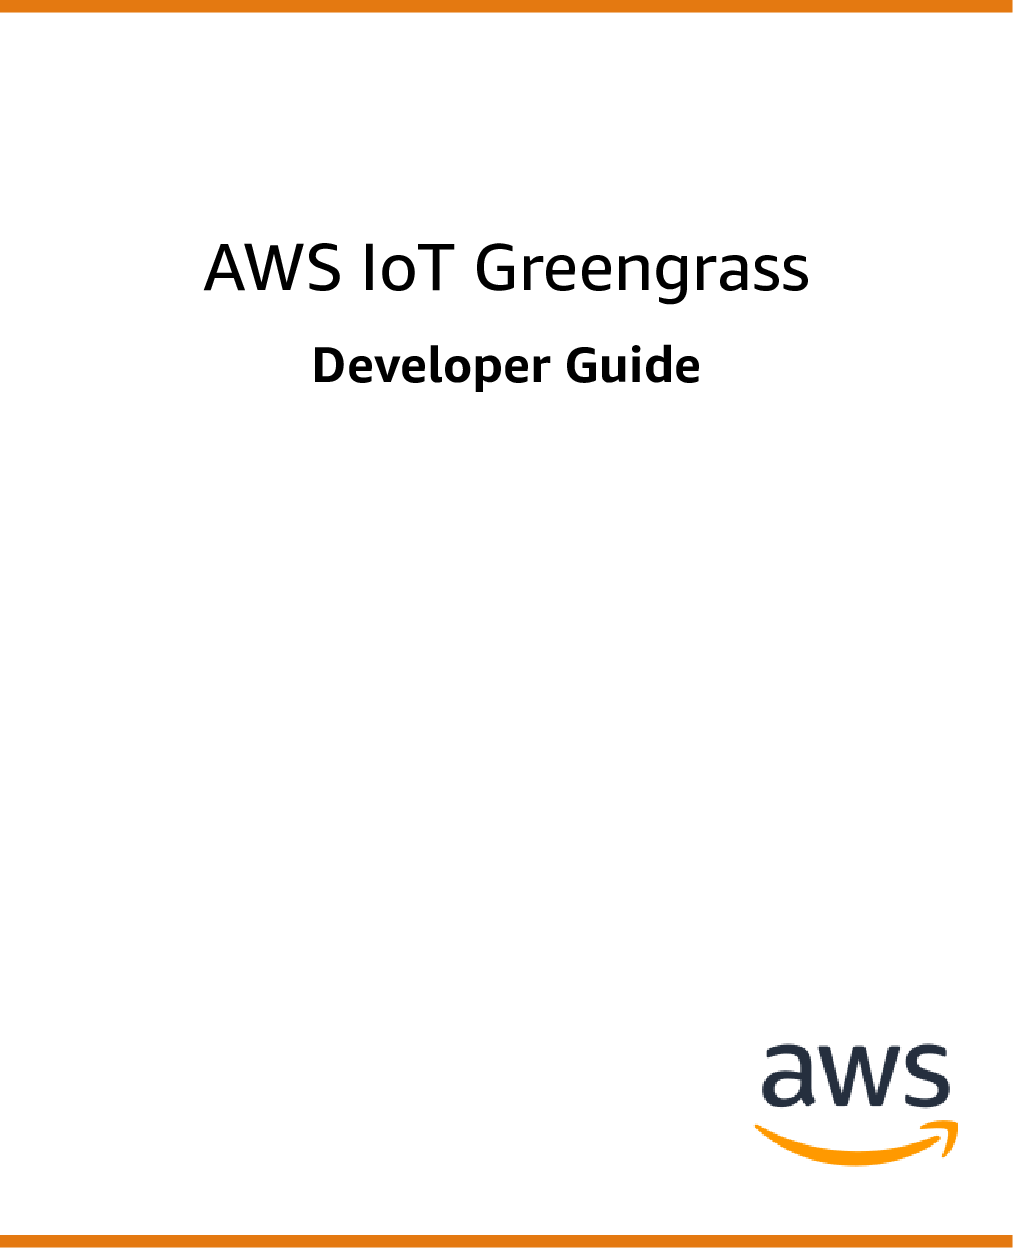 AWS IoT Greengrass Developer Guide